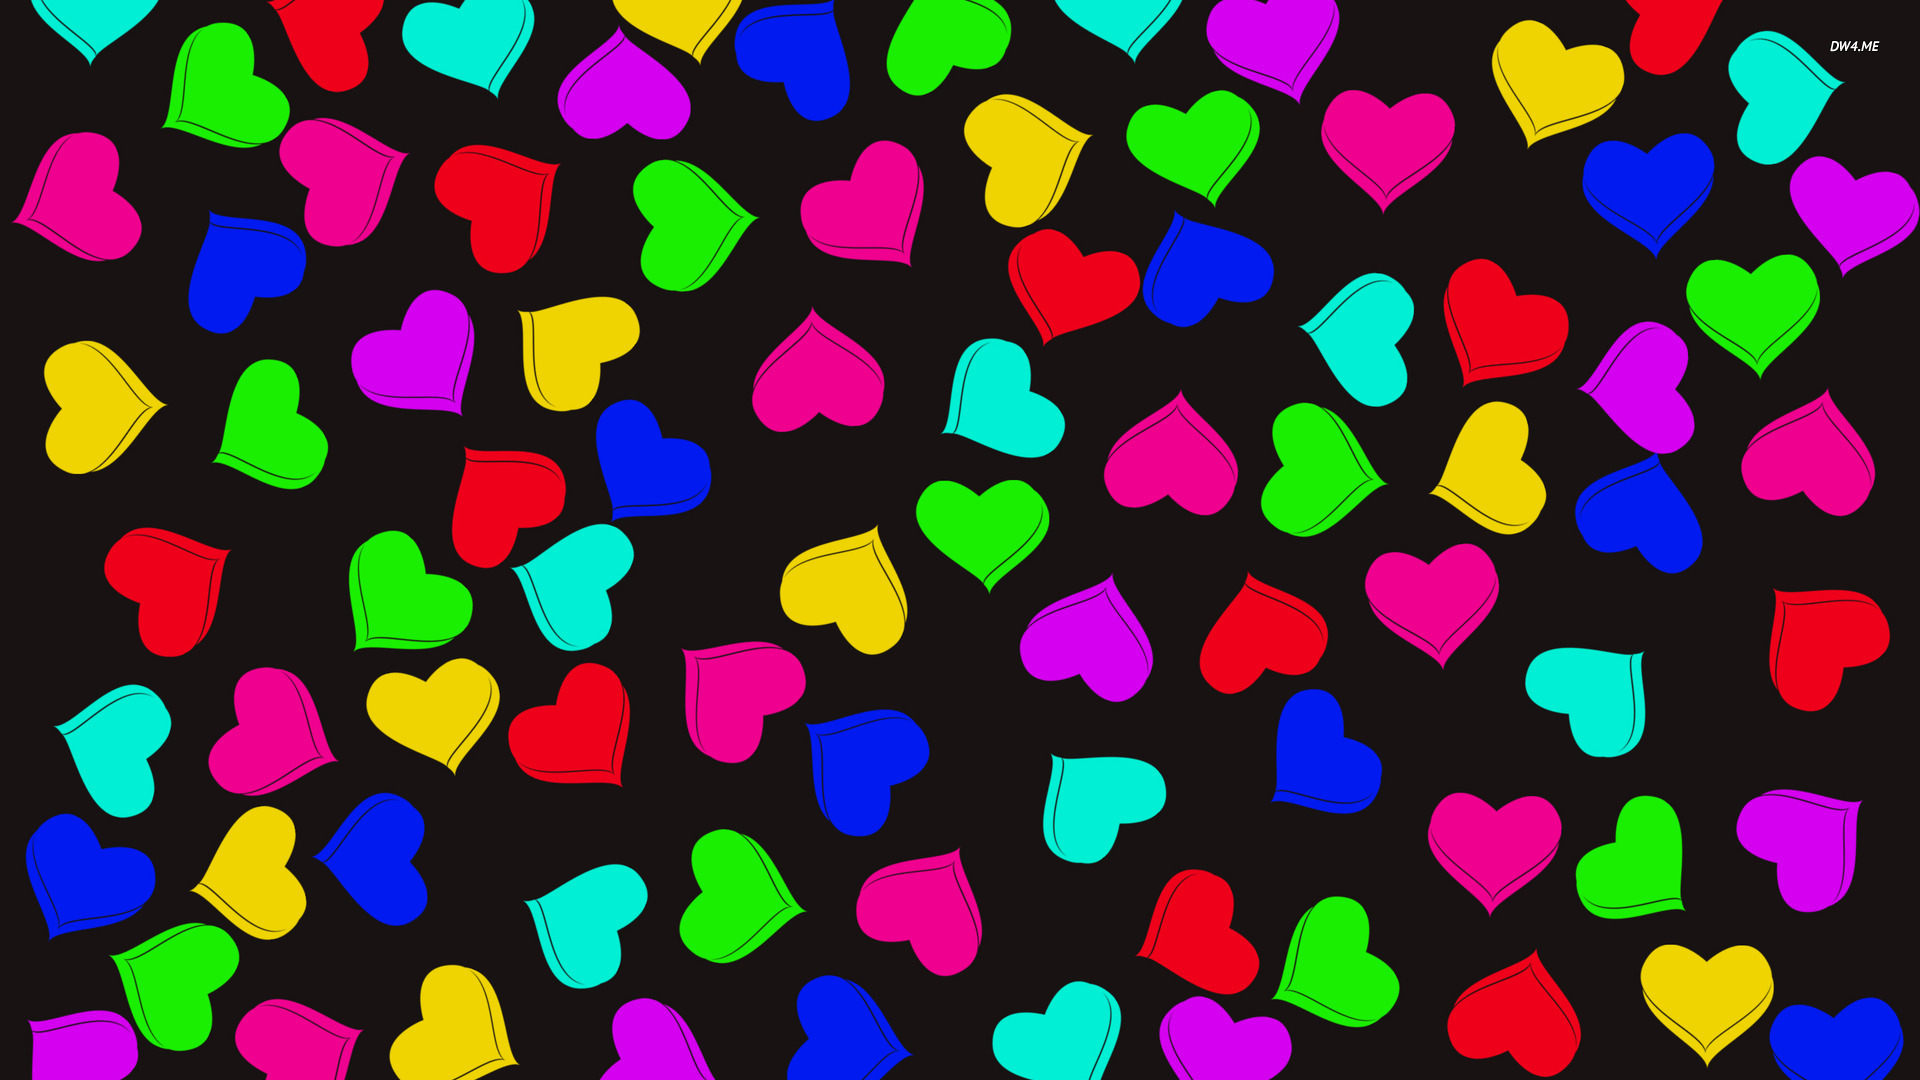 59 colorful heart backgrounds on wallpapersafari - Heart to heart wallpaper ...